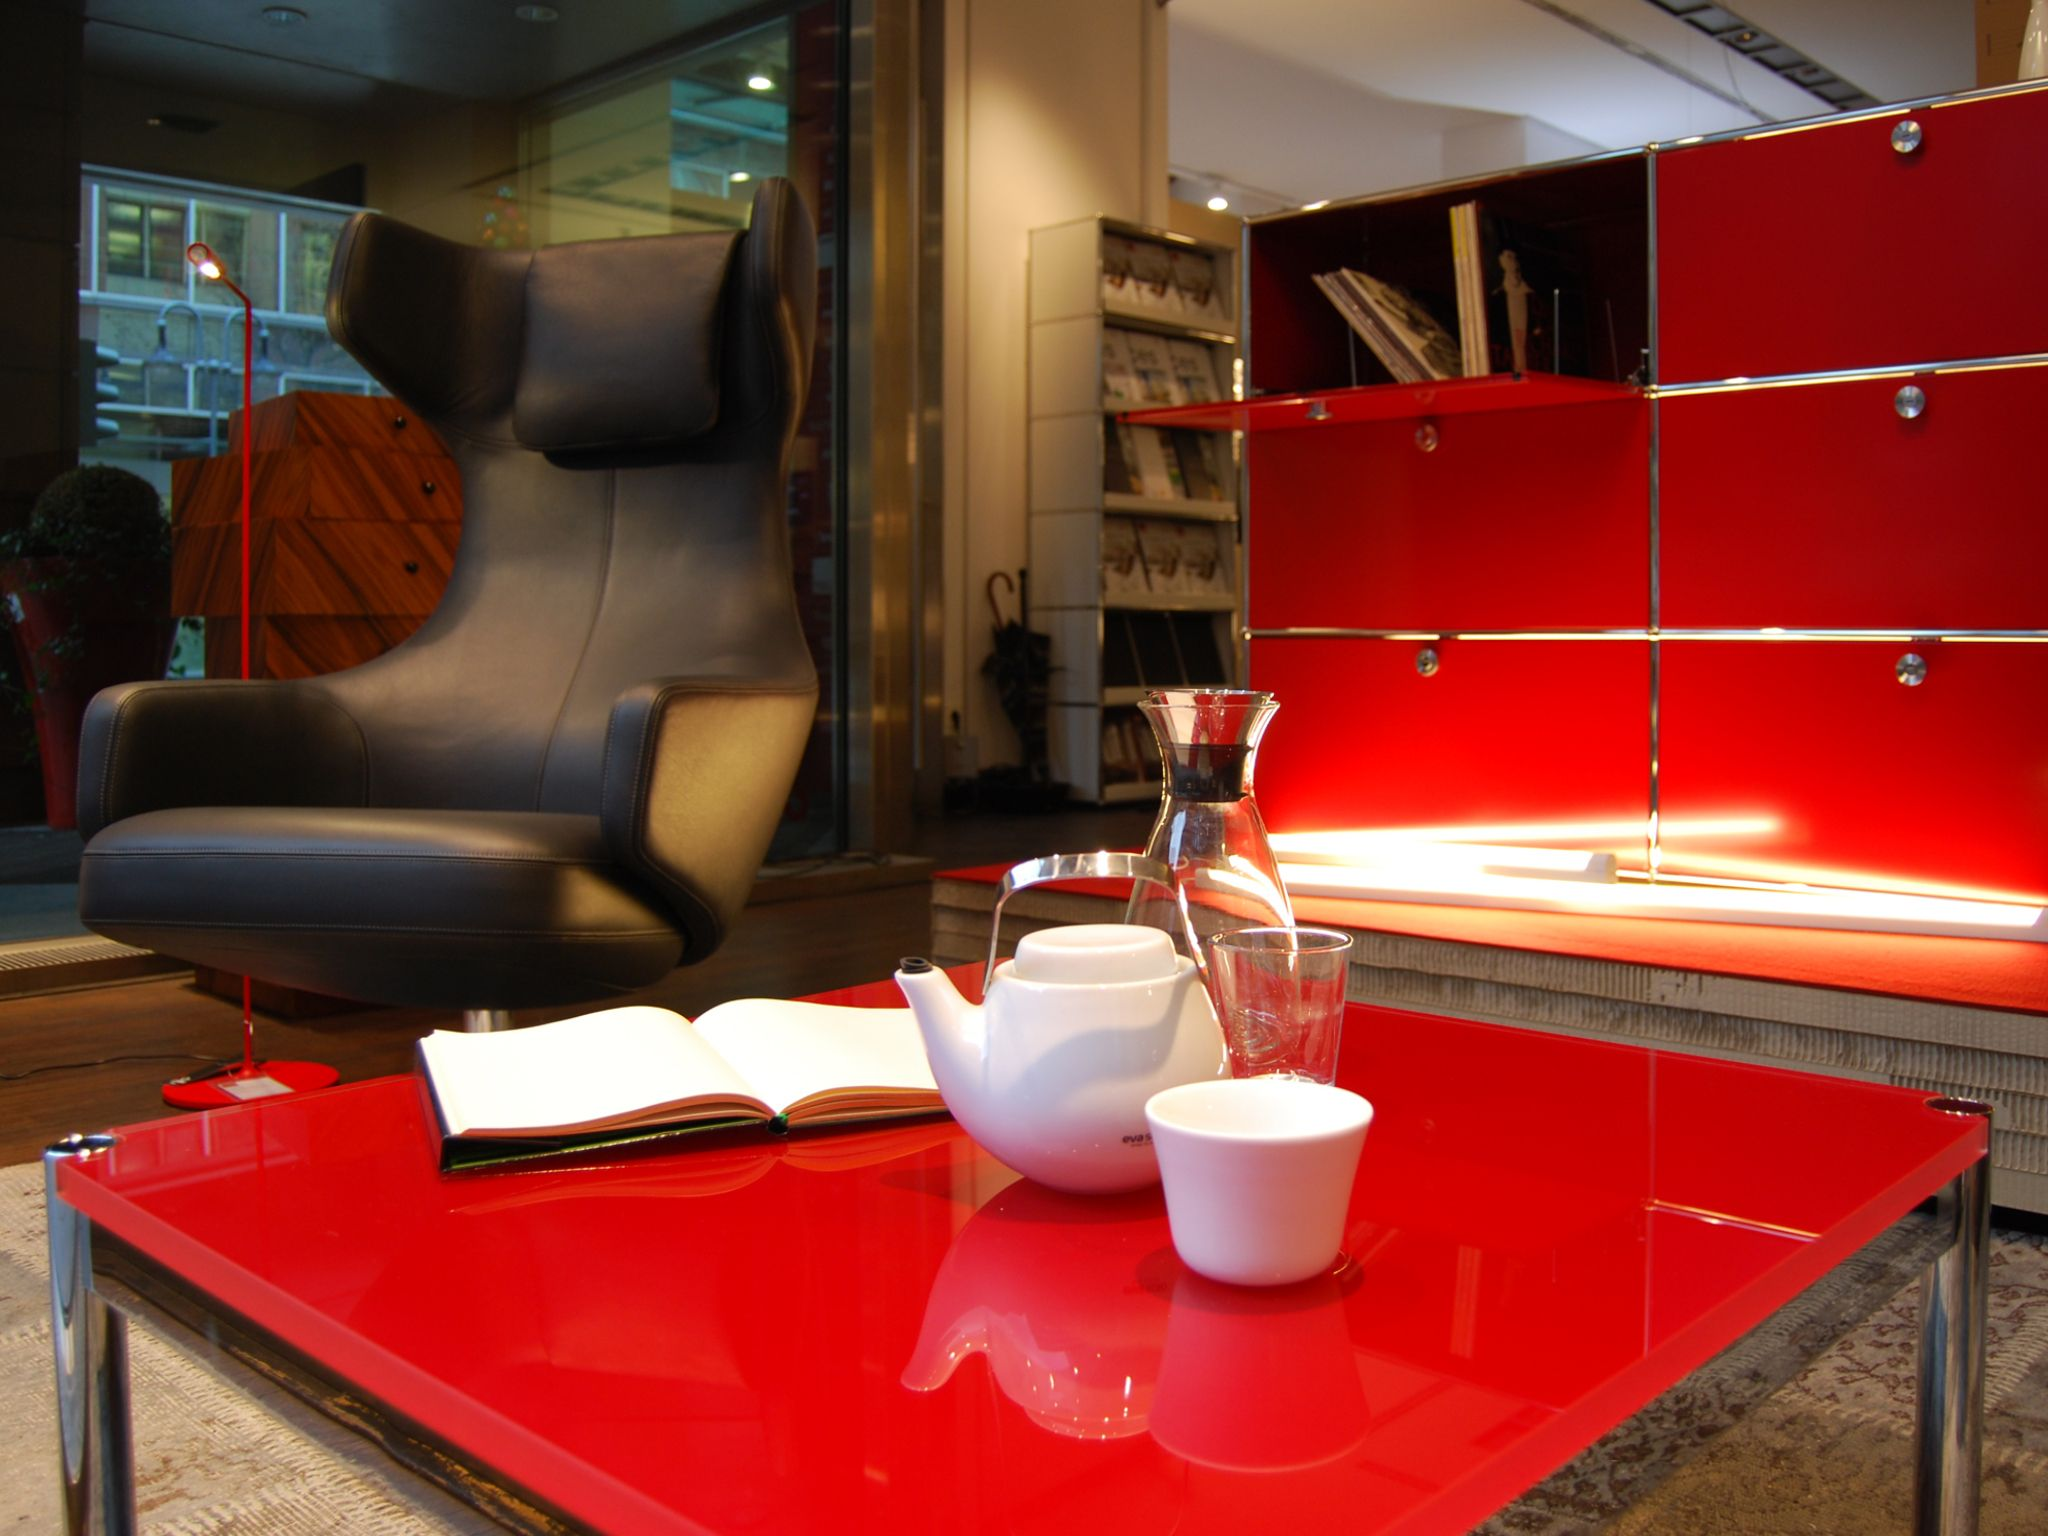 Frick Frankfurt usm haller coffee table and usm haller sideboard in ruby